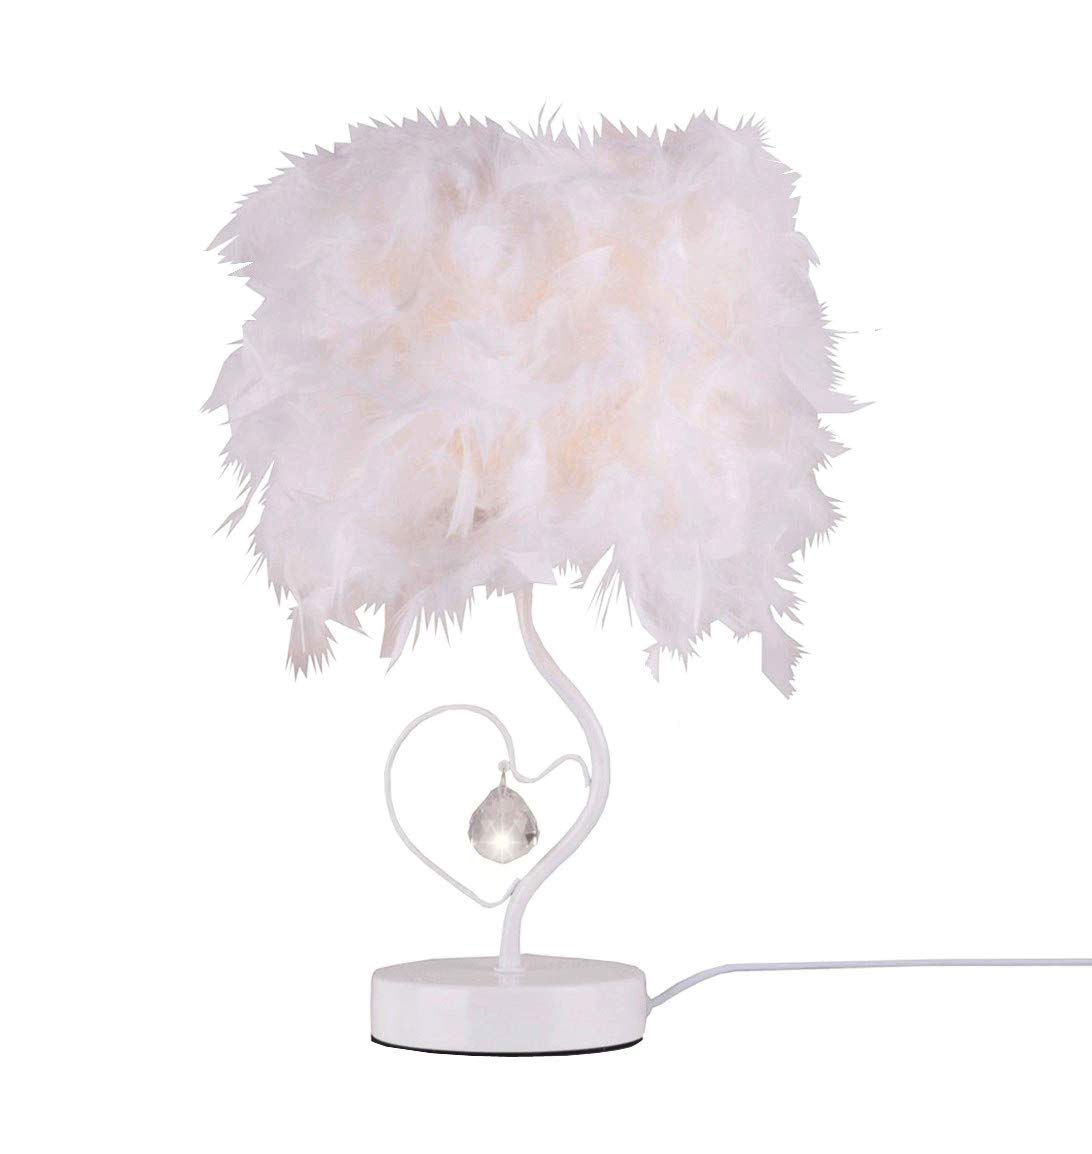 Surpars House Heart Shape White Feather Deco Desk Lamp Crystal Bedside Table Lamp [Energy Class A+] Surpass Lighting S01700600001